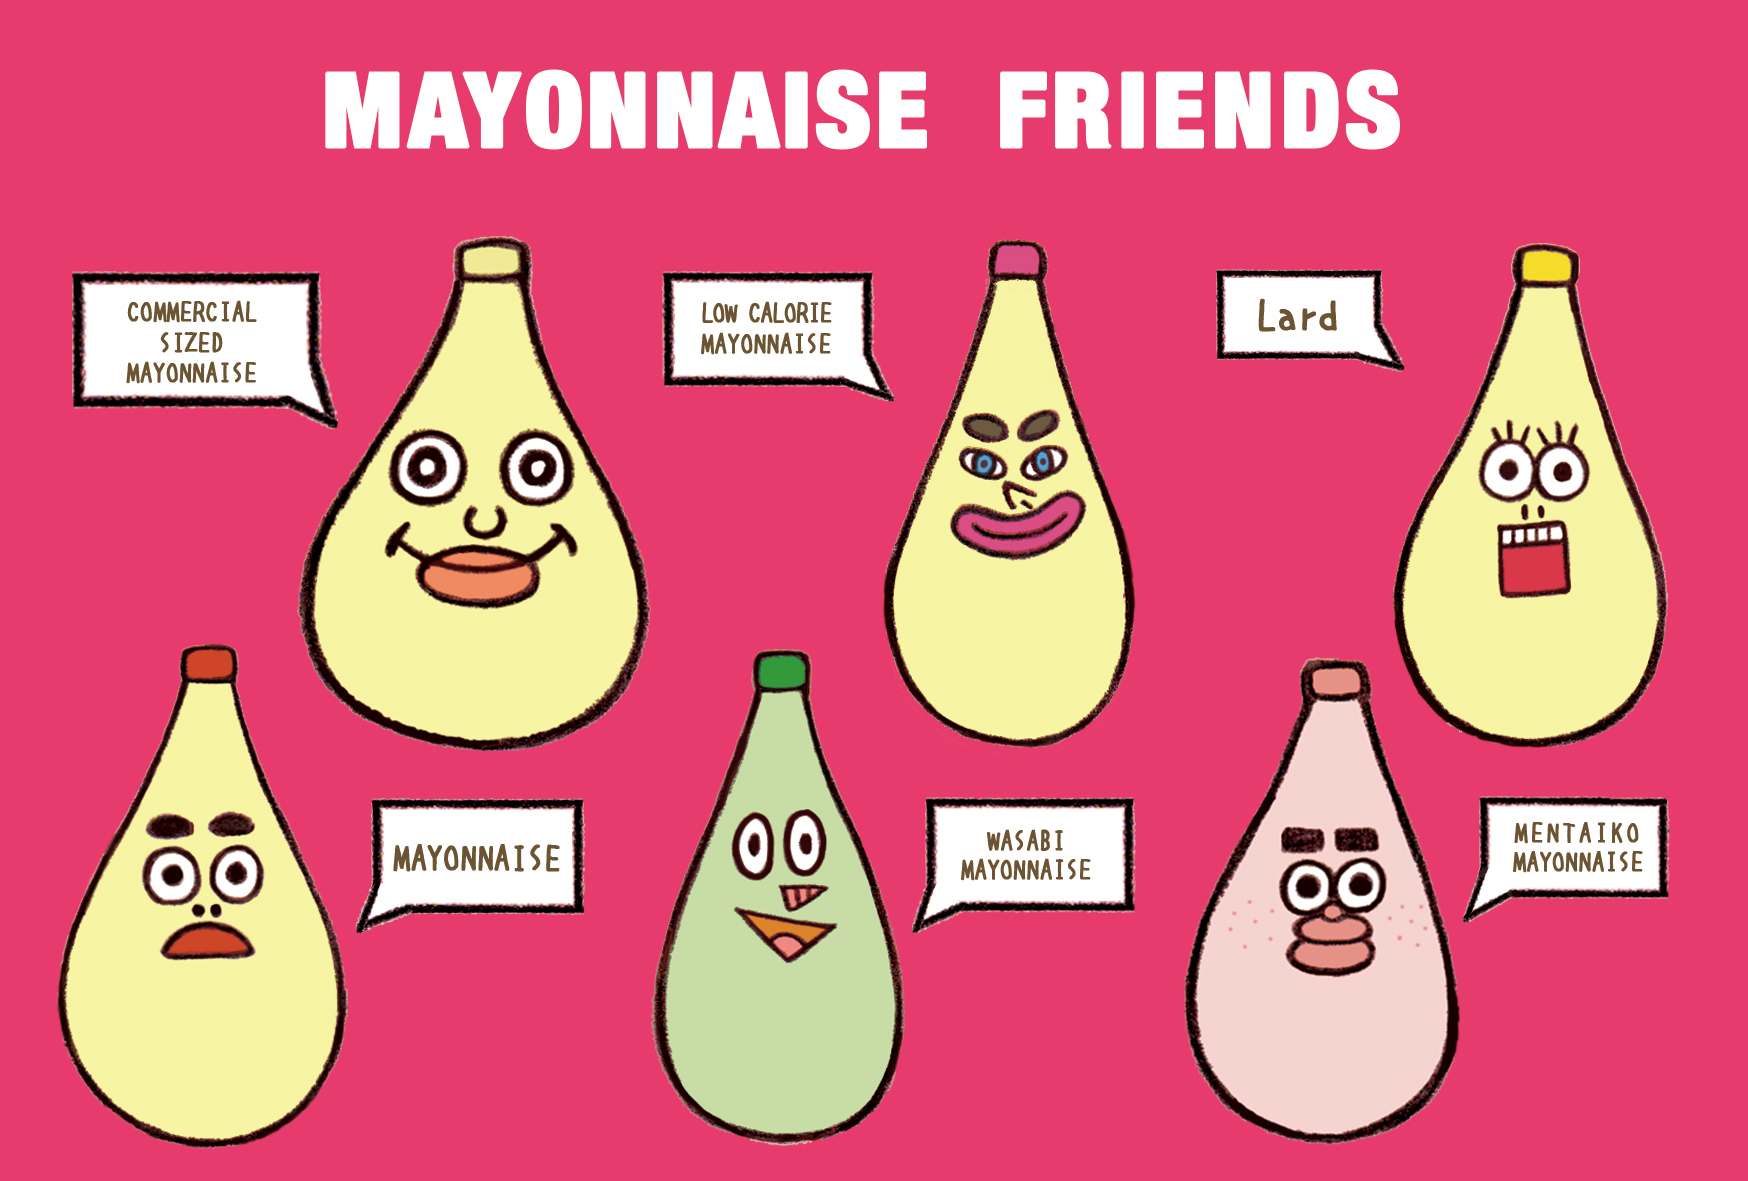 MAYONNAISE FRIENDS